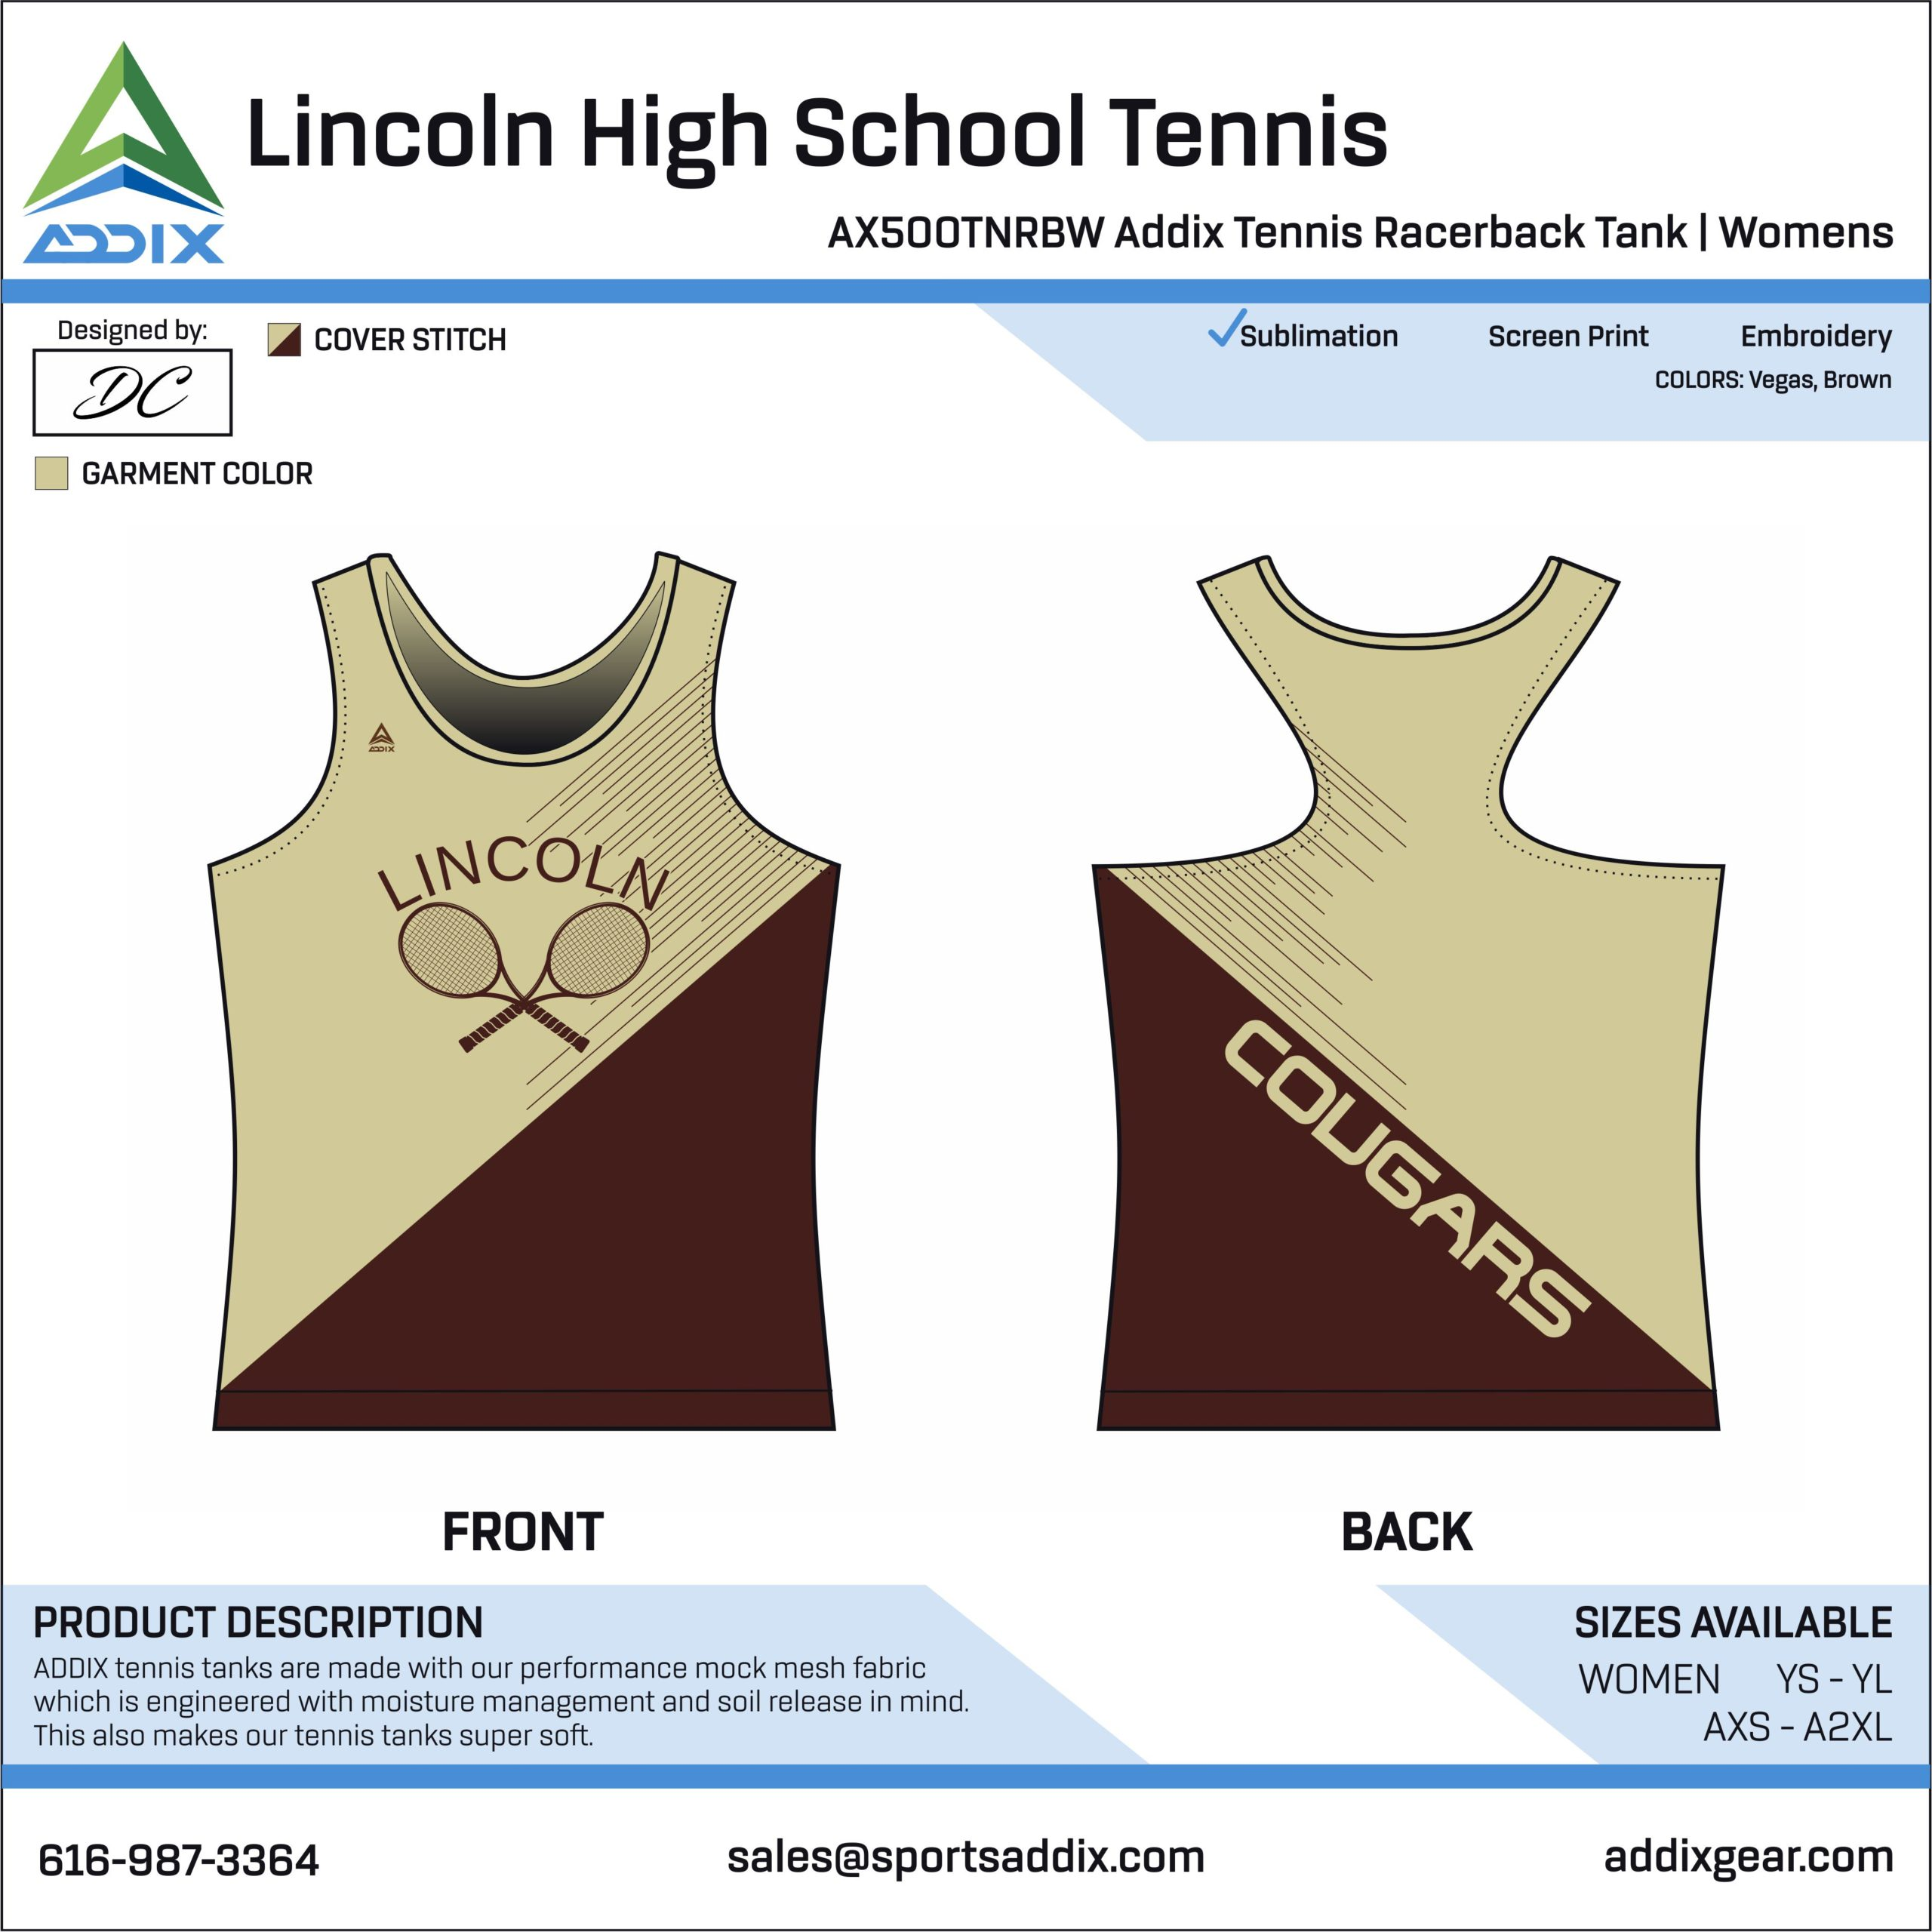 Lincoln High School Tennis Racerback